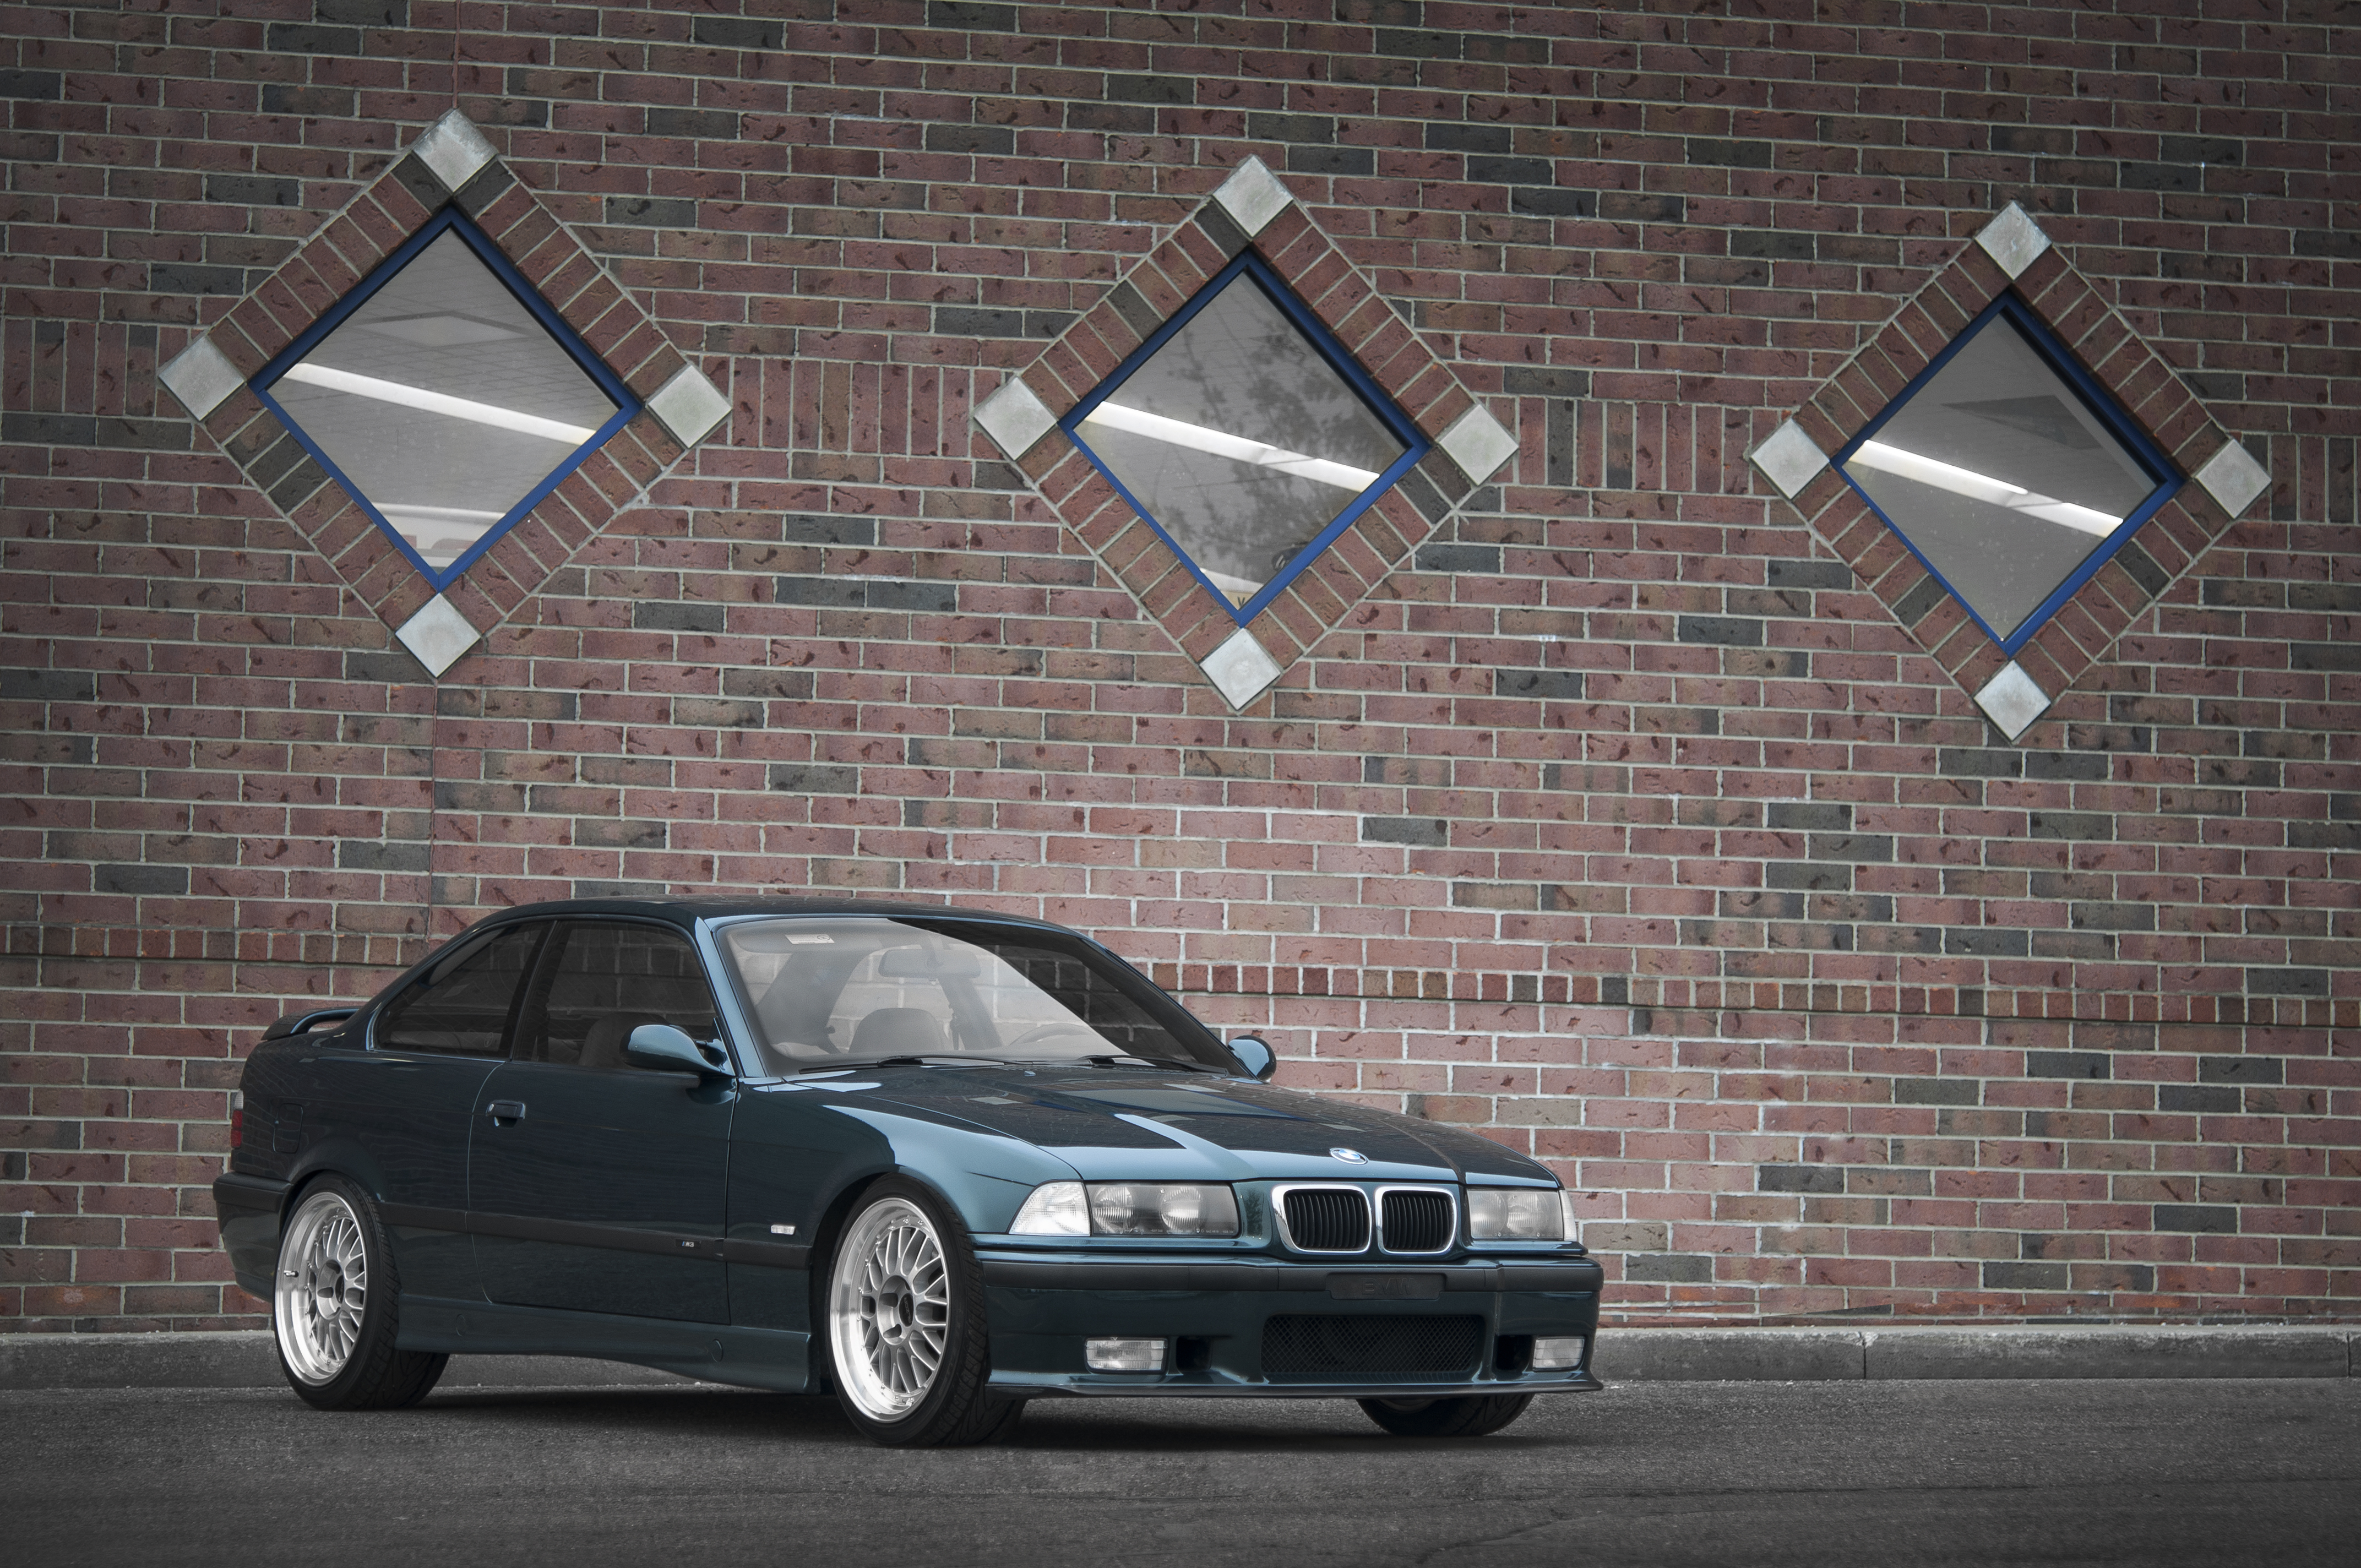 Best Mods For The Bmw E36 3 Series 1991 1999 Ecs Tuning